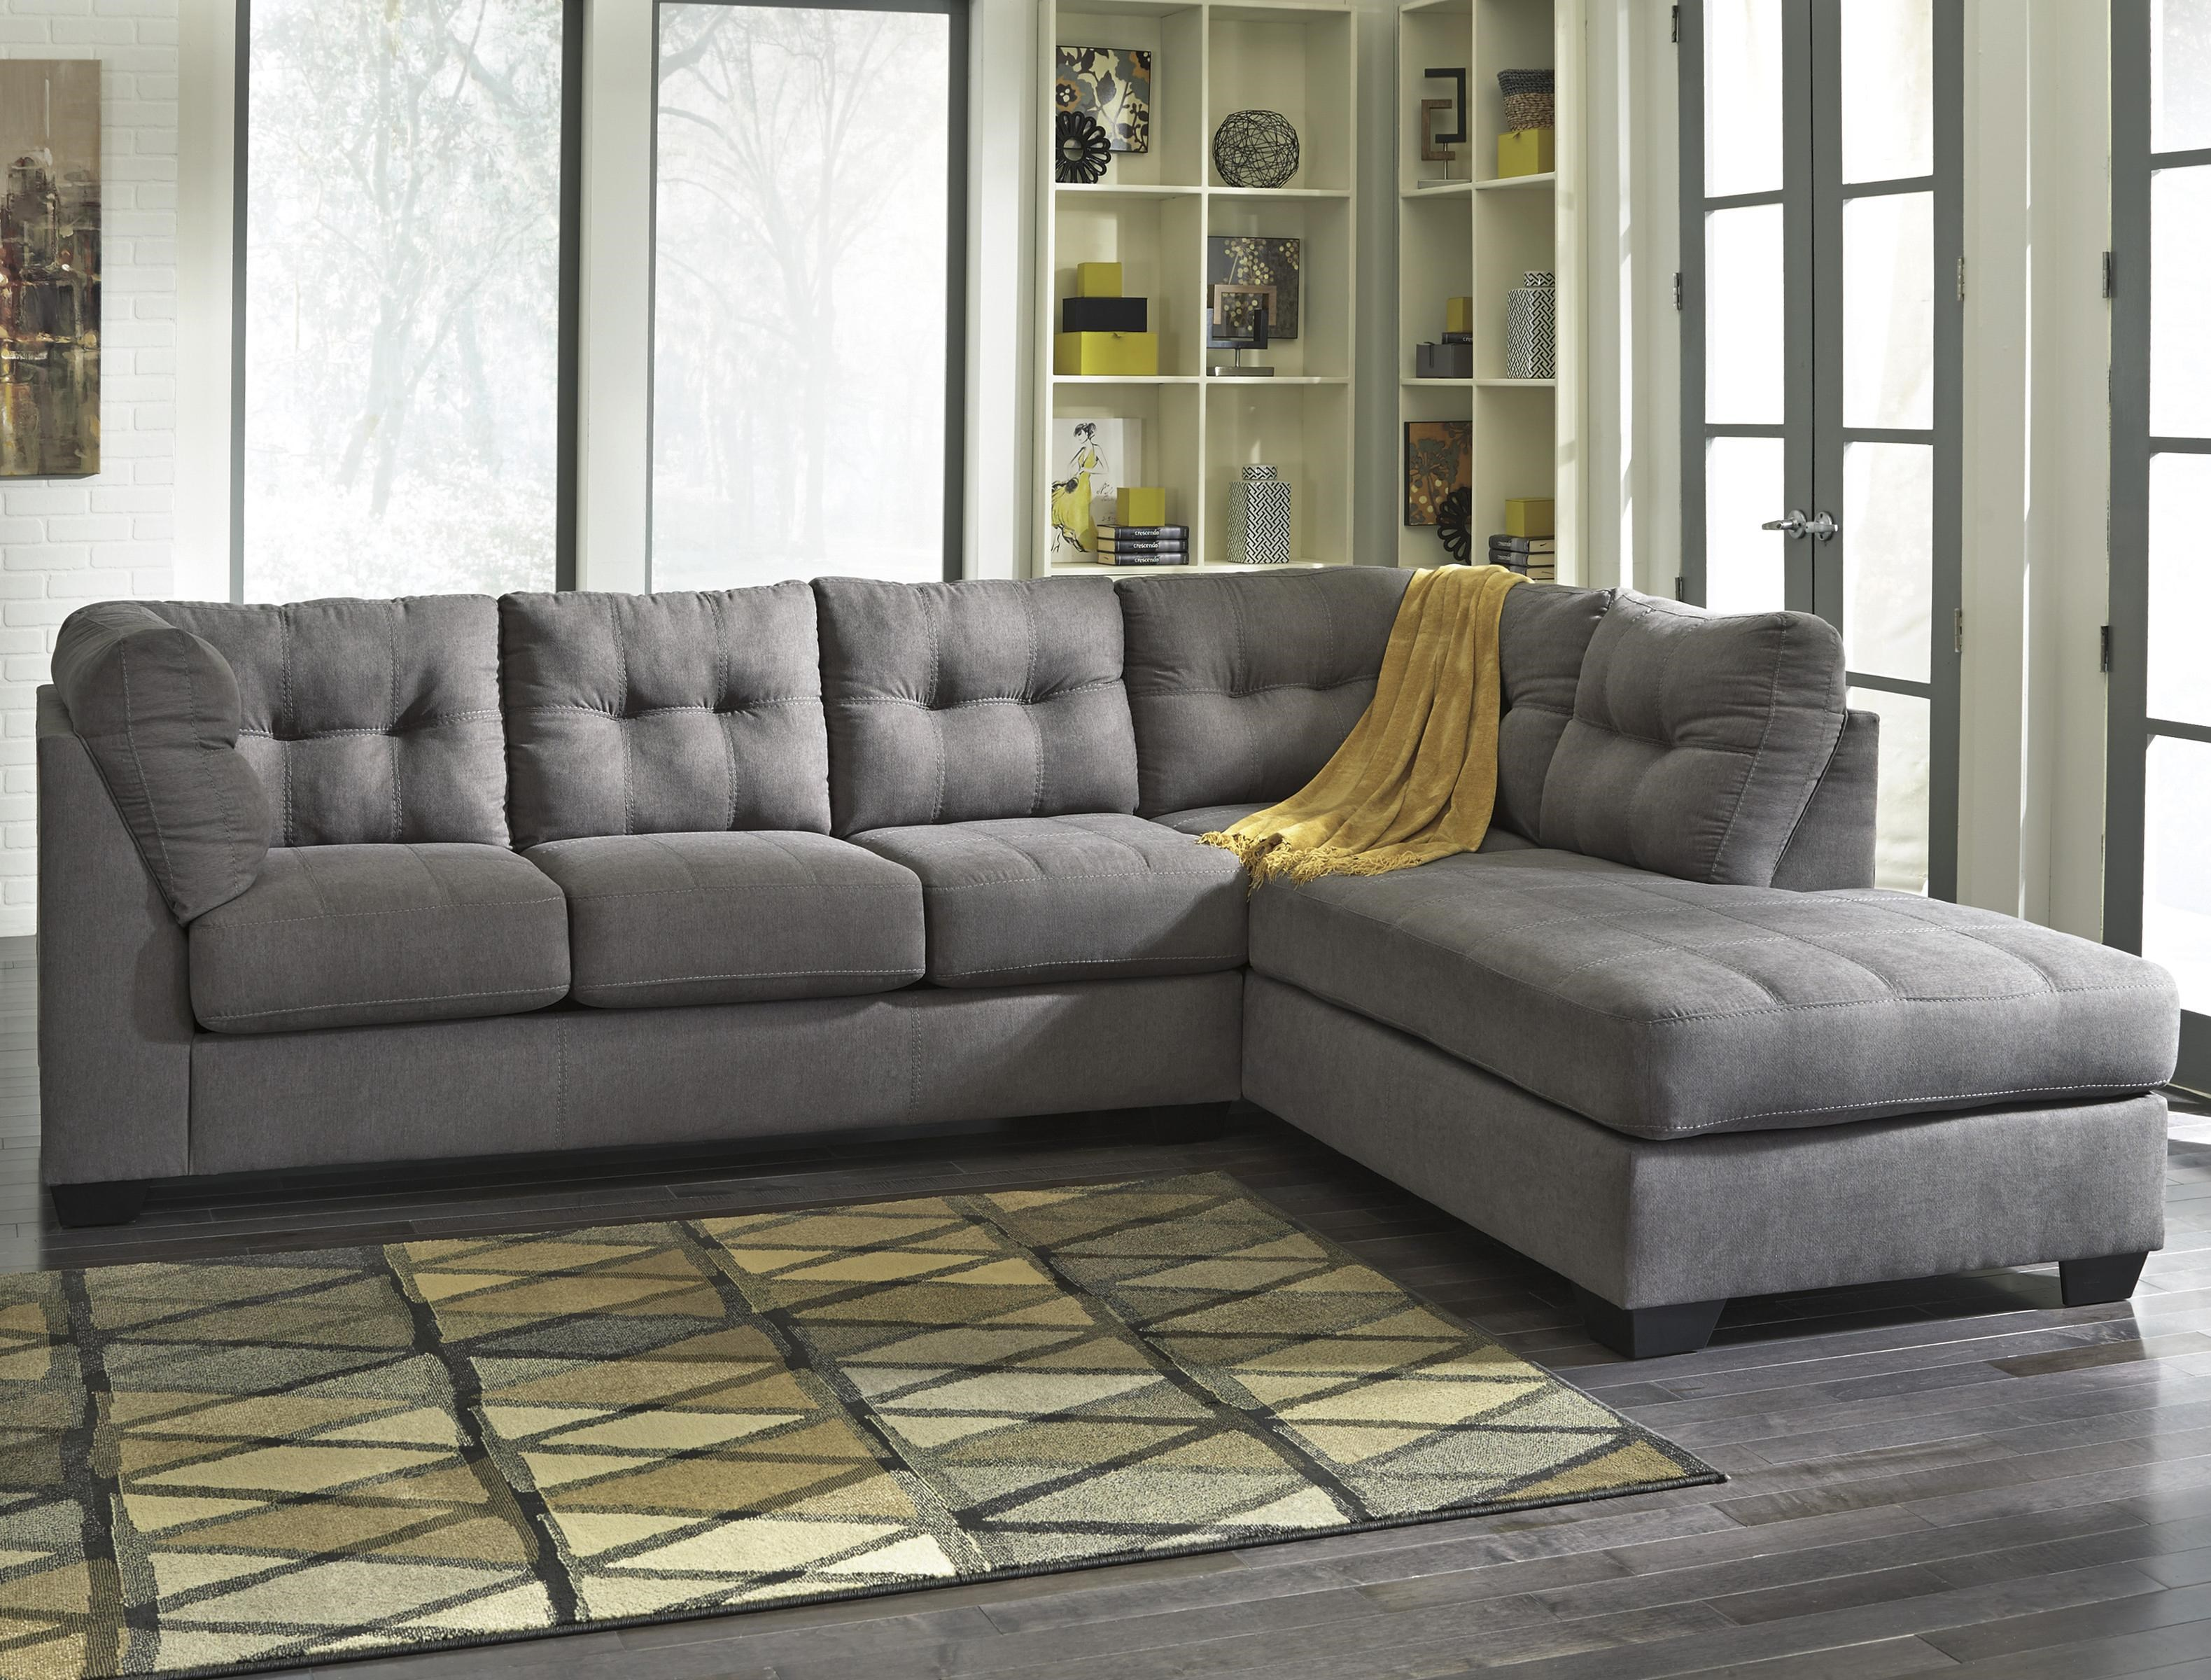 Benchcraft Mayberry 2 Piece Sectional With Right Chaise